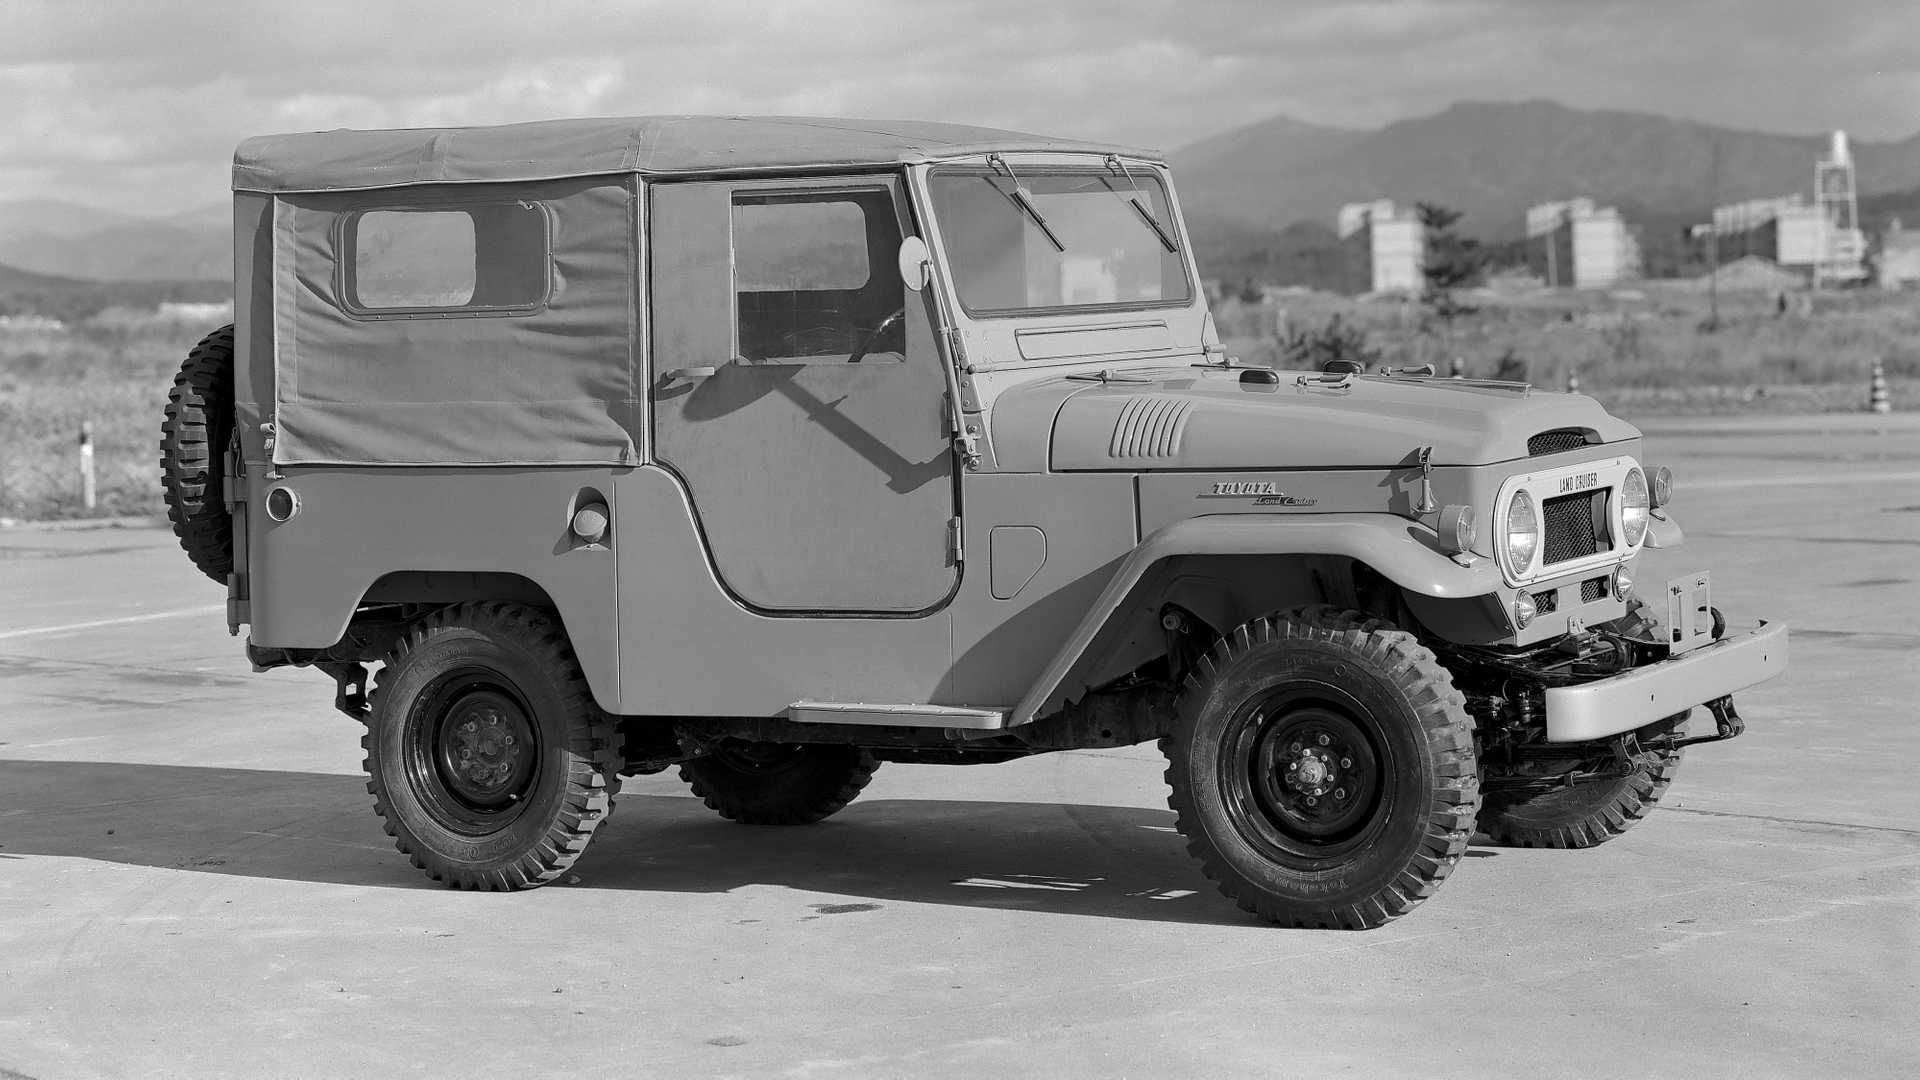 Toyota Land Cruiser 40 Parts To Re-Enter Production, Including Engines